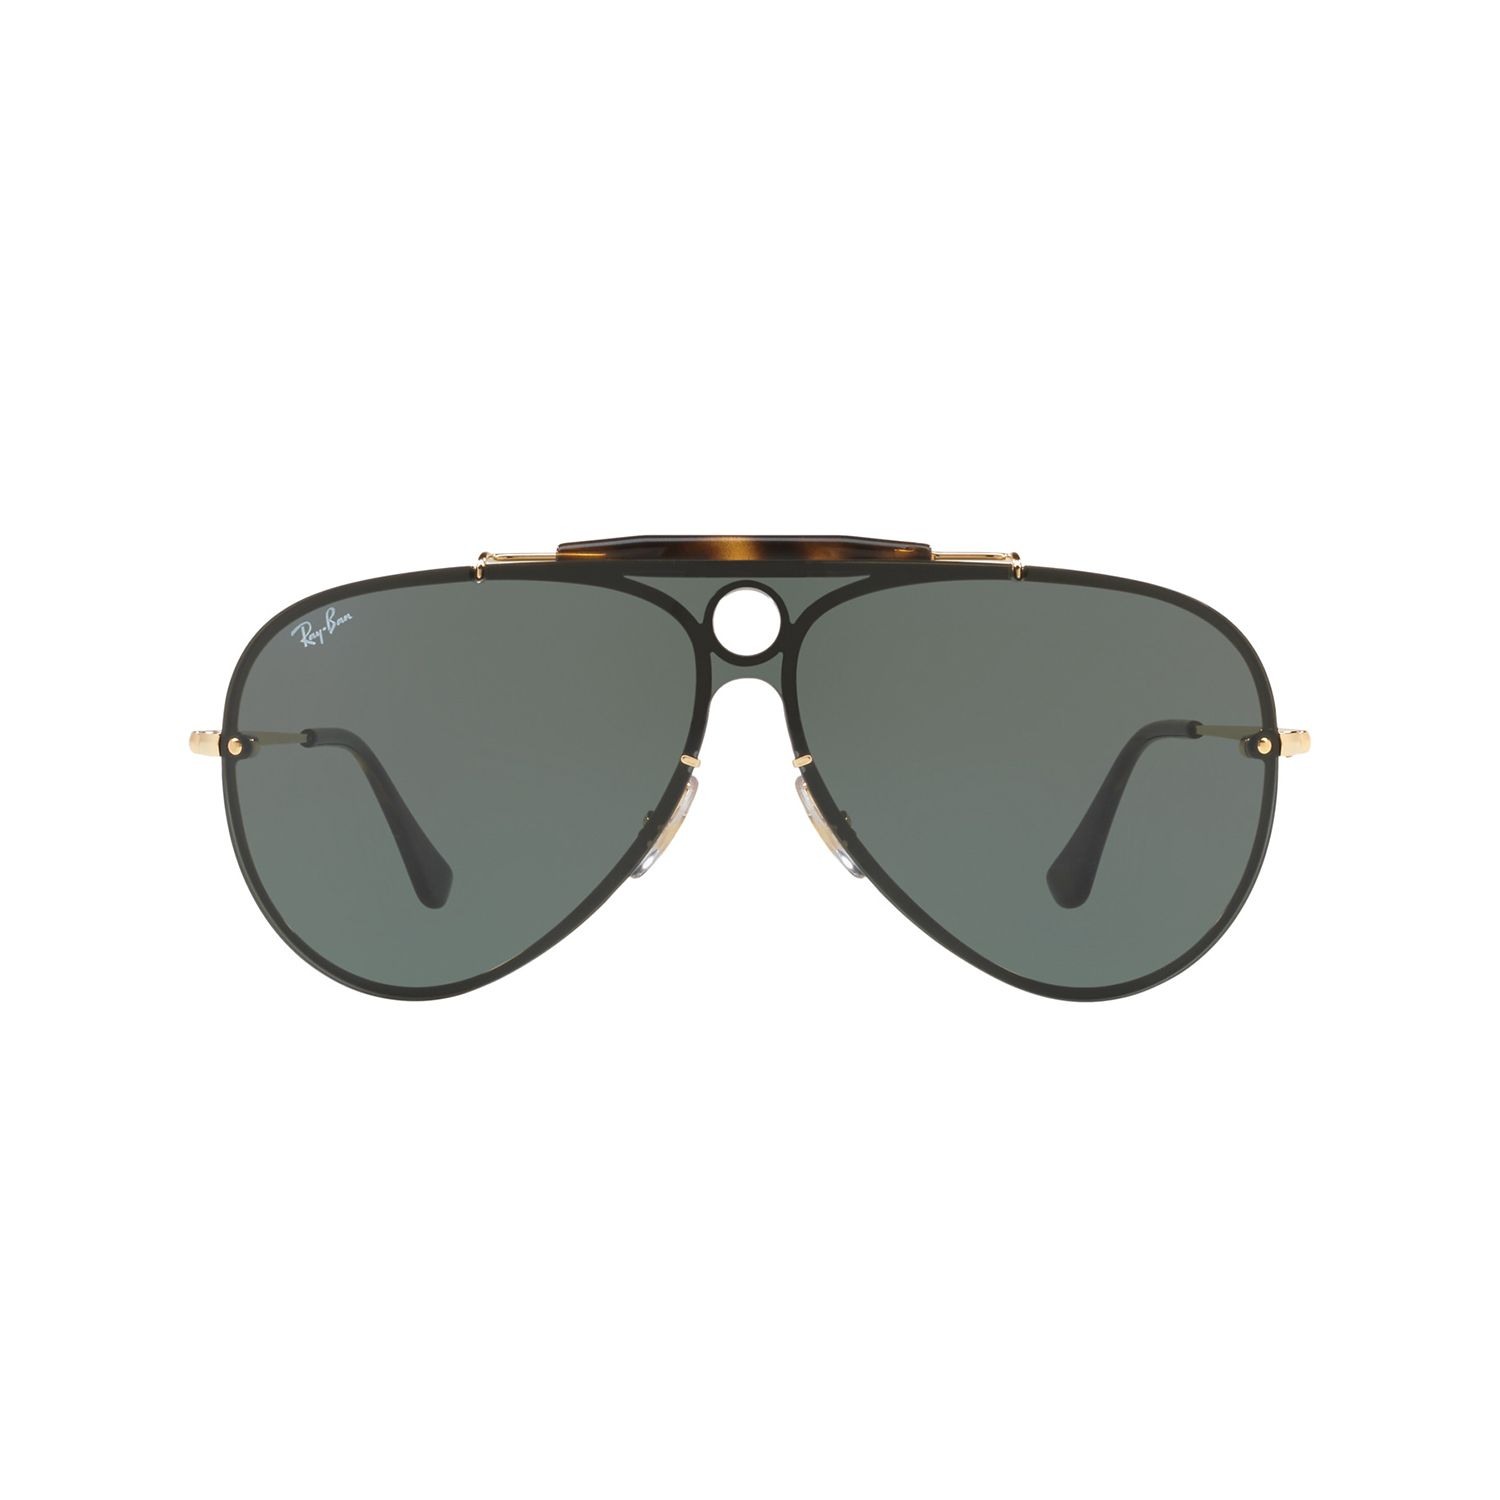 e2e3bdb8b Women's Ray-Ban Sunglasses | Kohl's